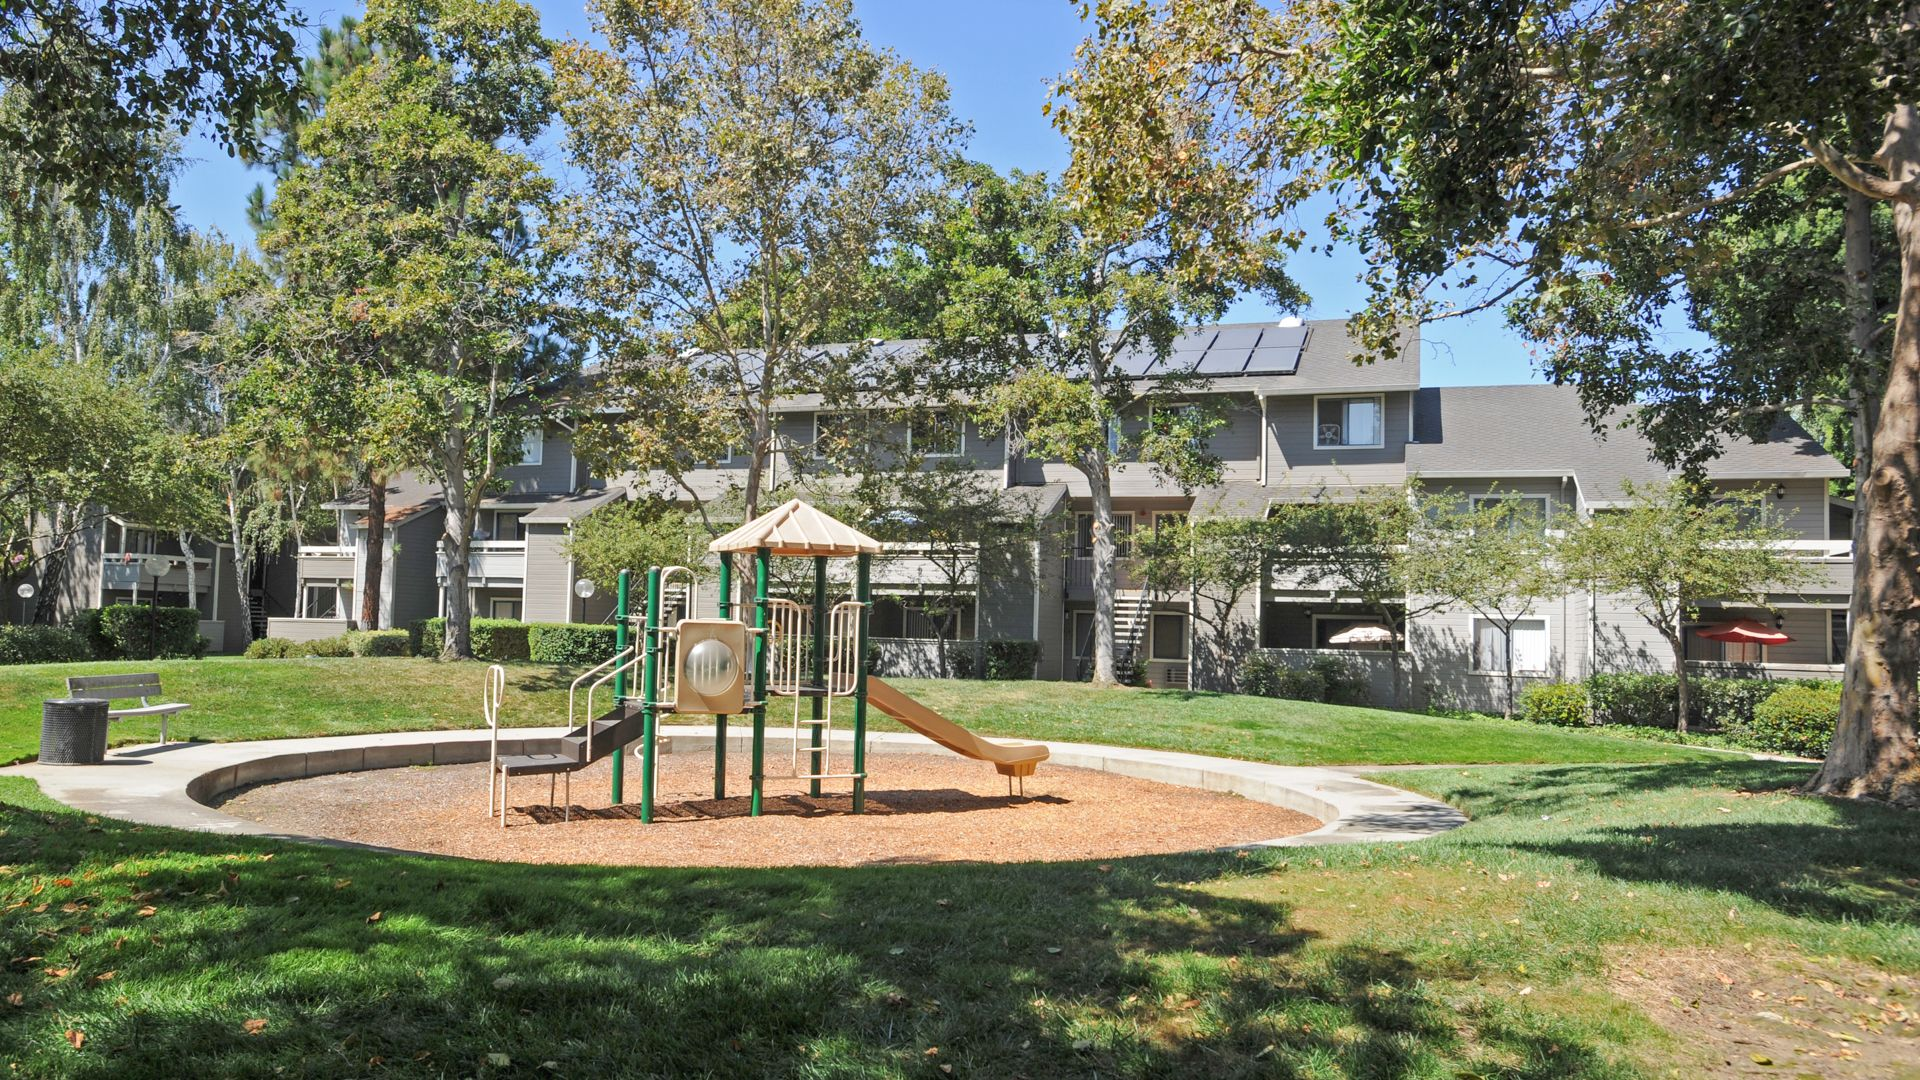 Briarwood Apartments - Playground